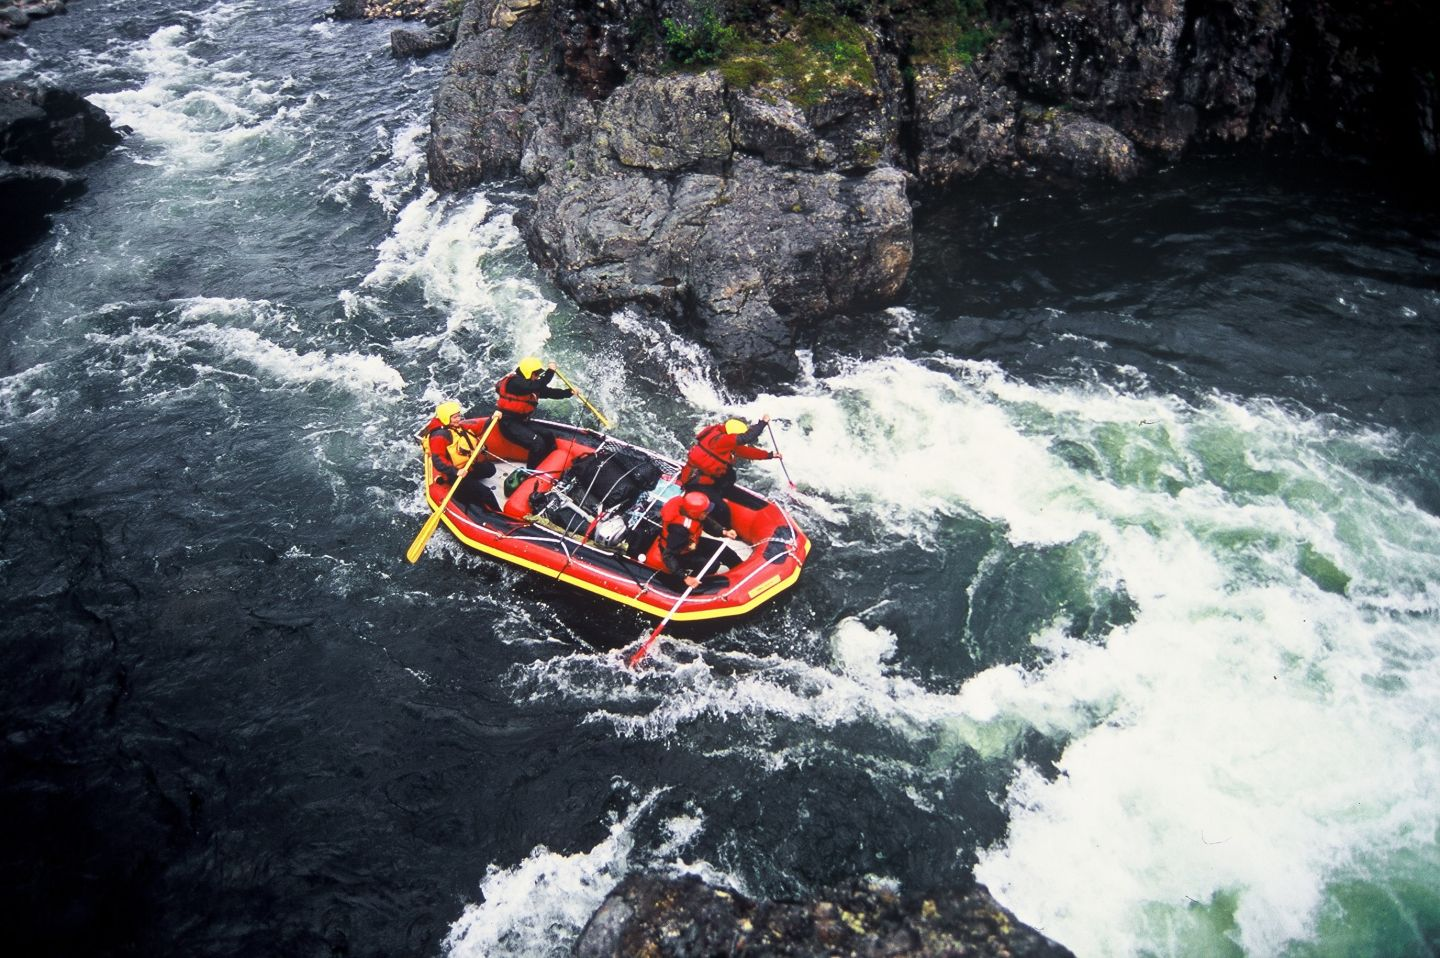 Summer tourism river rafting in Lapland